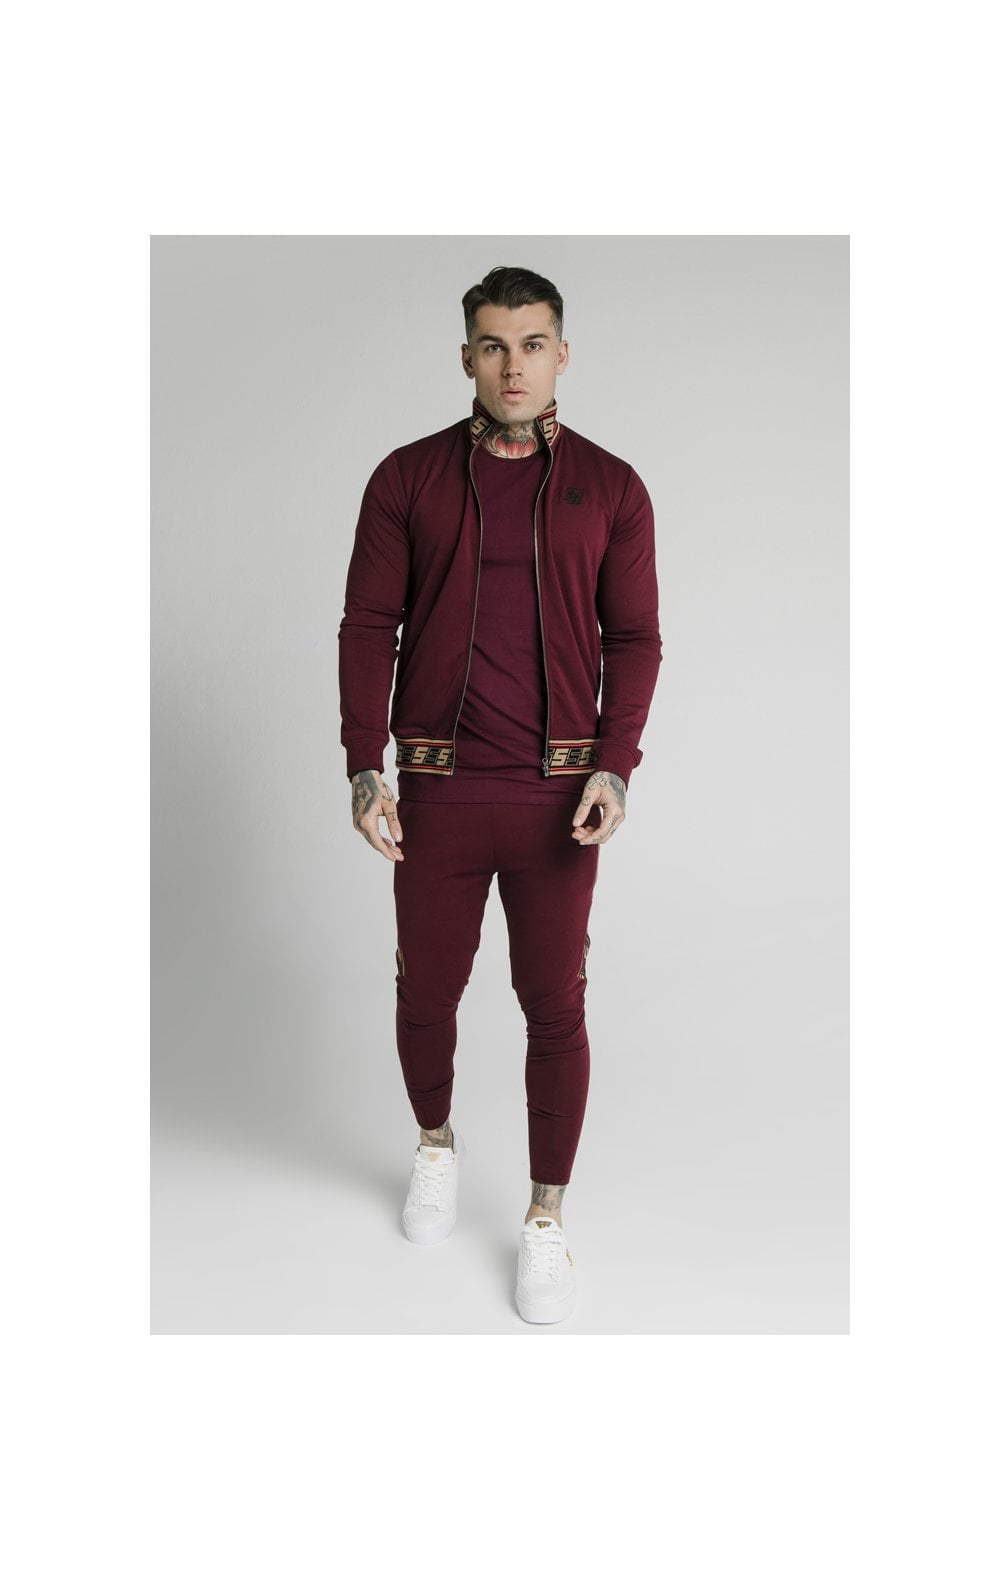 SikSilk Retro Jacquard Athlete Pants - Burgundy (5)